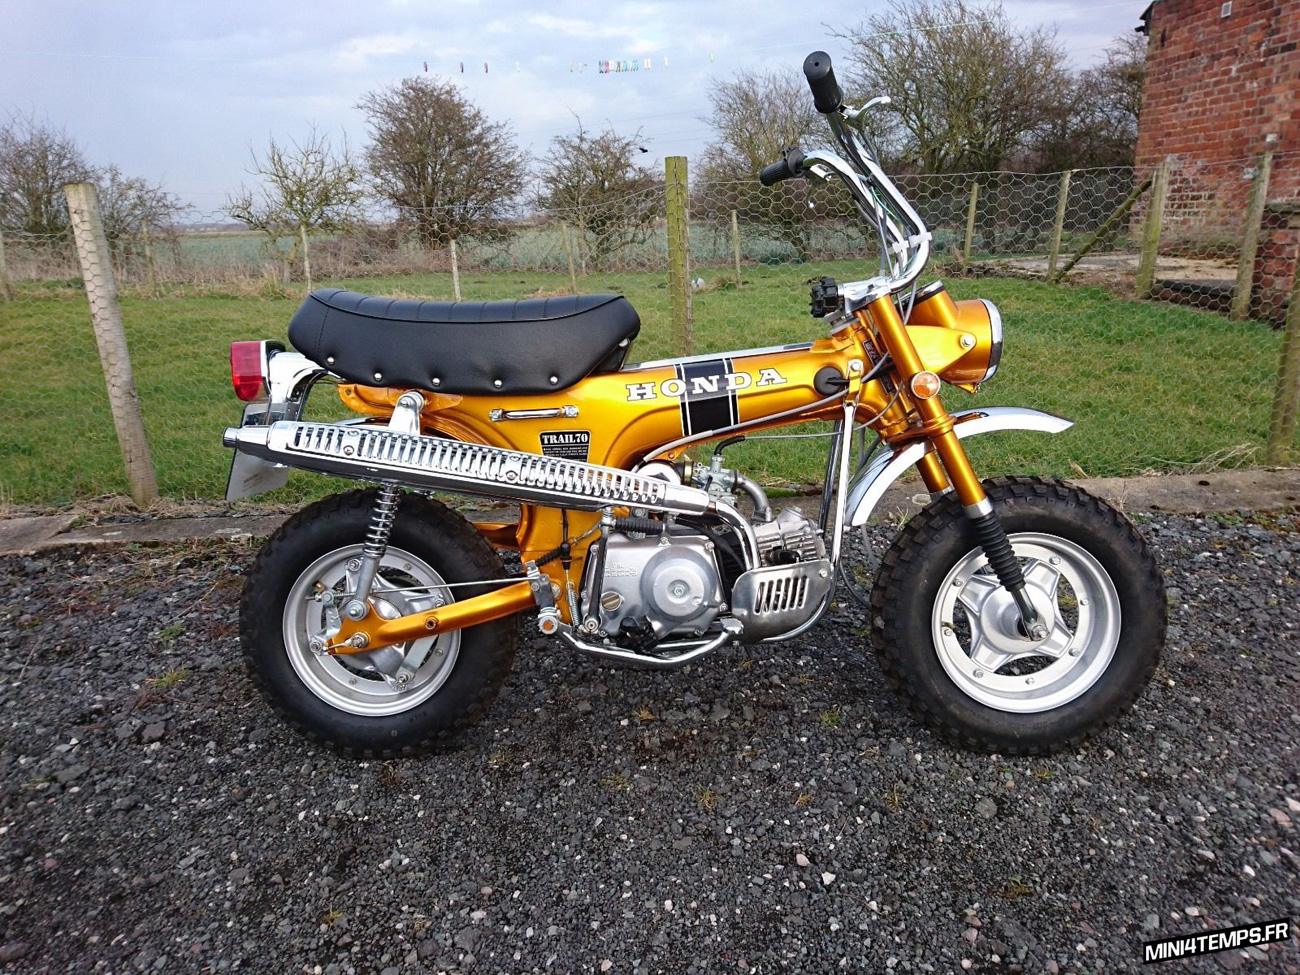 Le Honda Dax CT70 de Alastair - mini4temps.fr